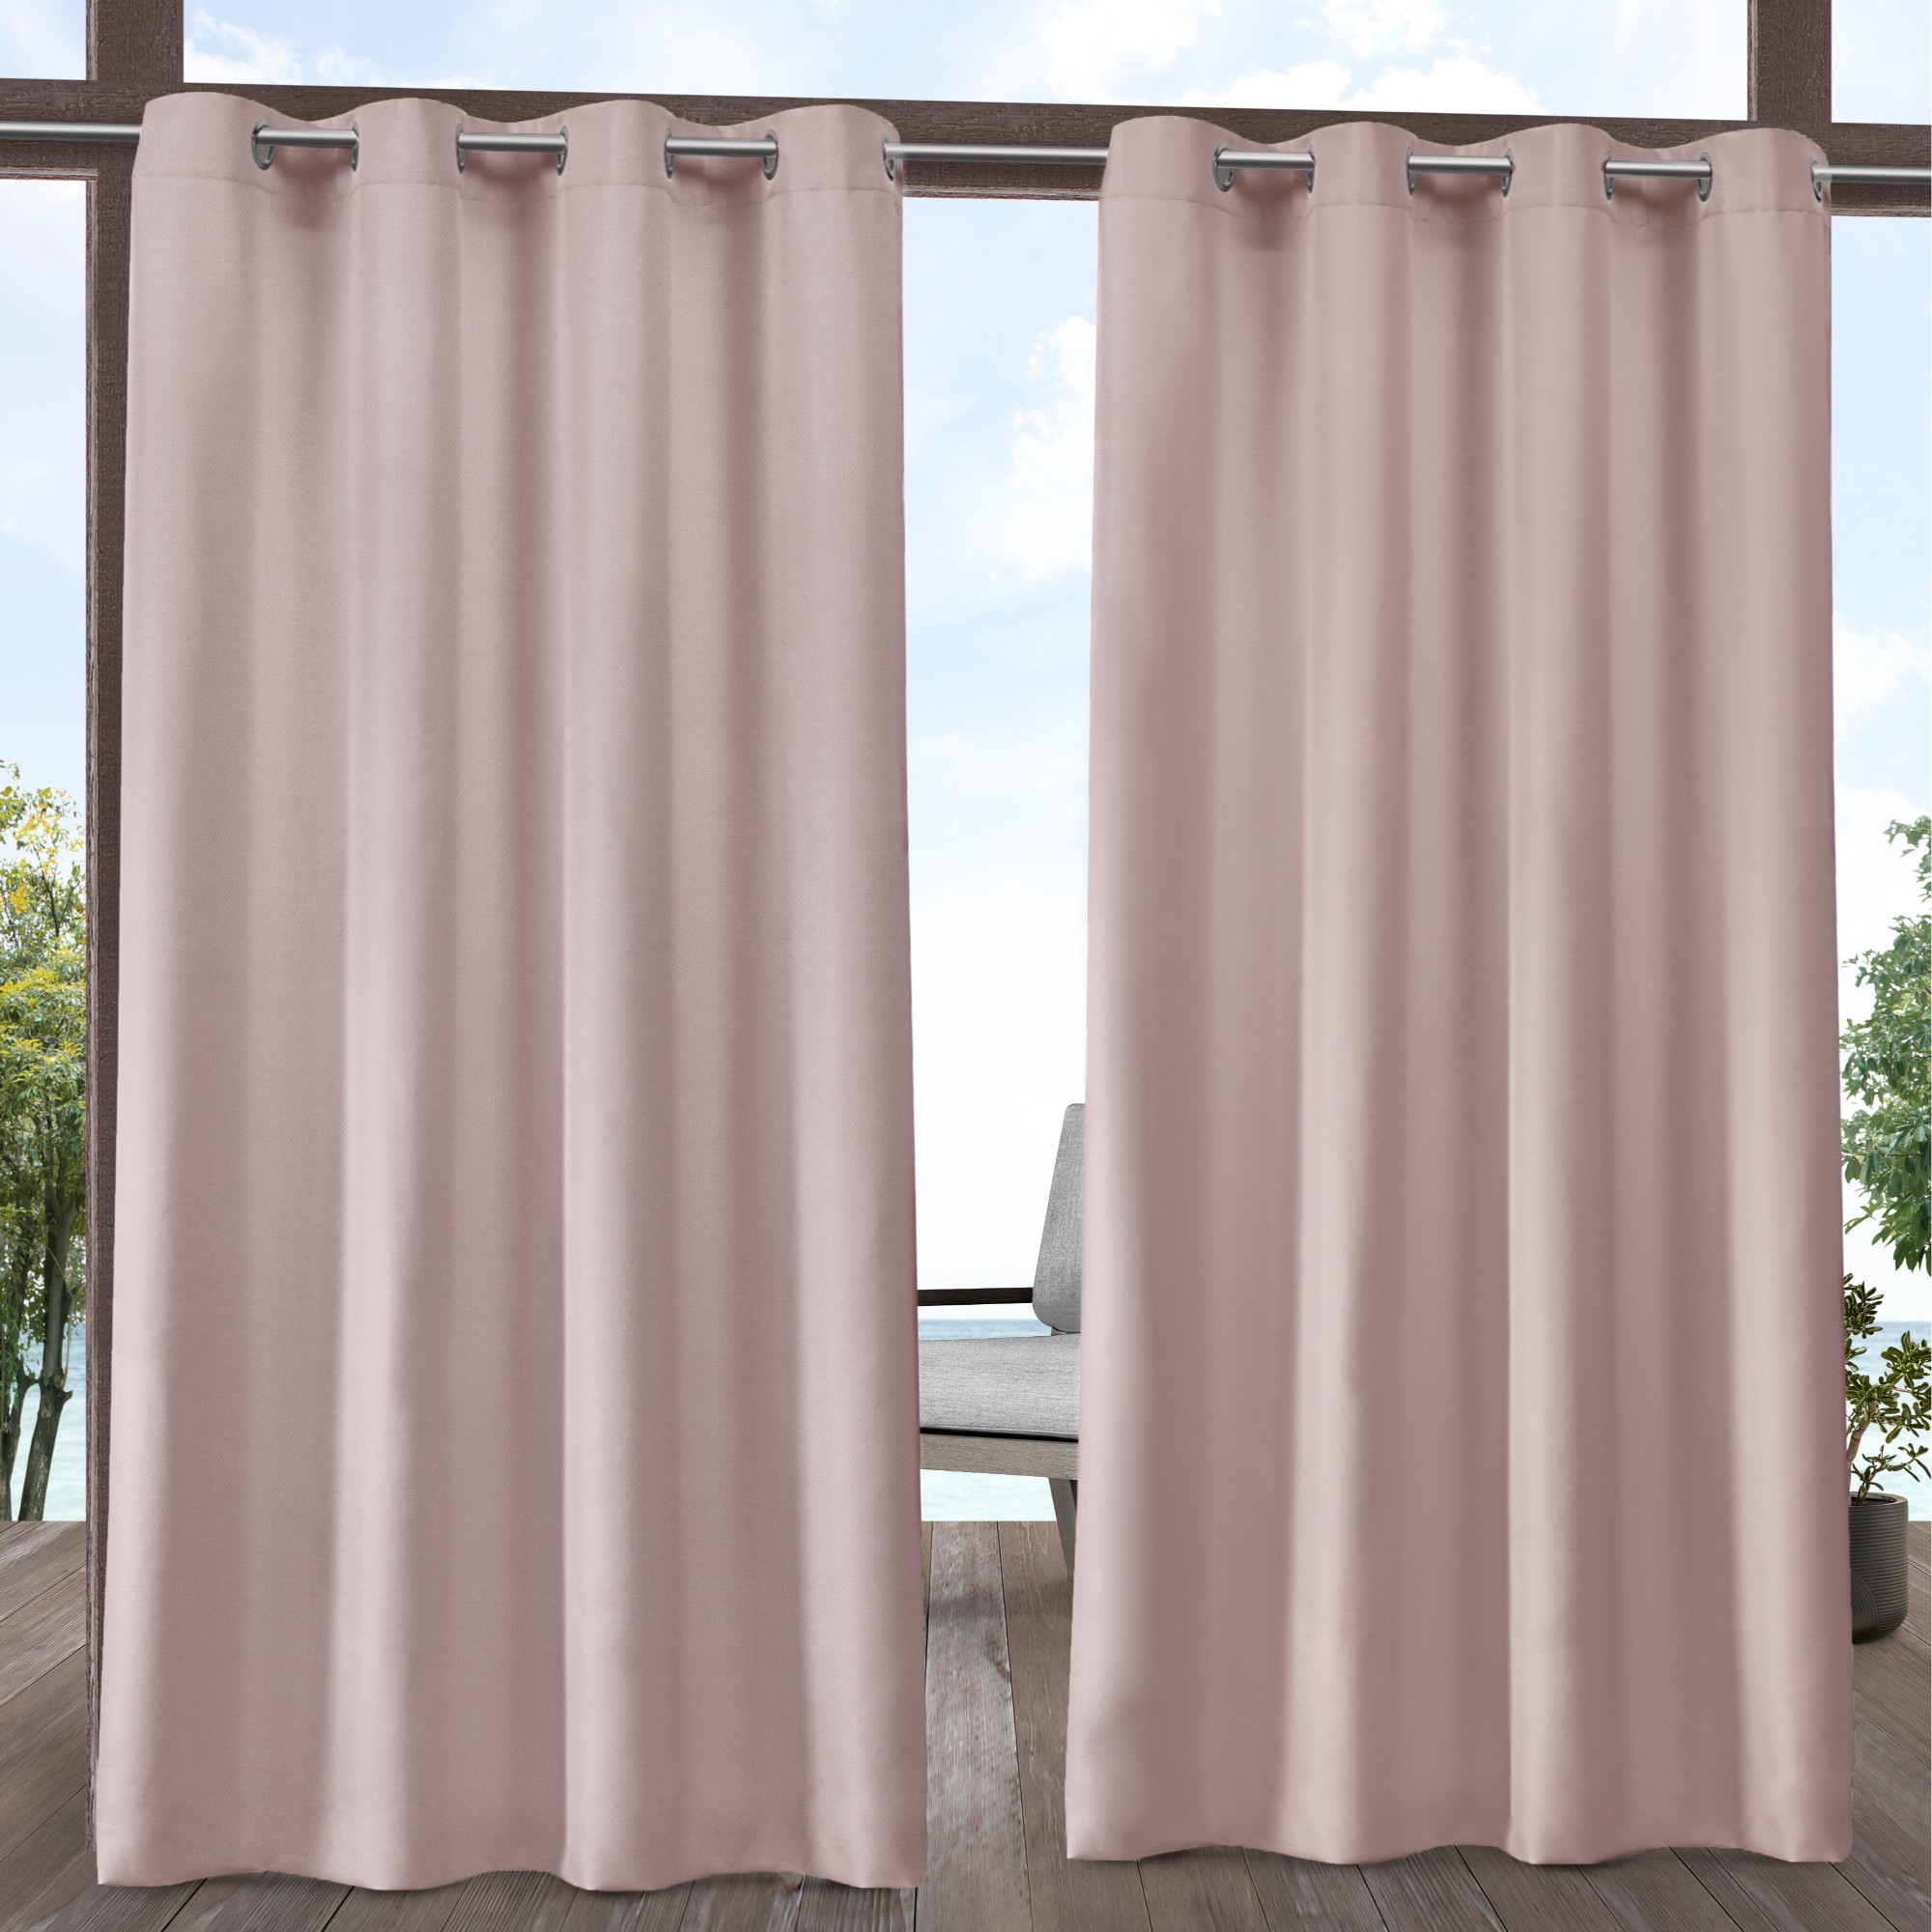 Exclusive Home Curtains 2 Pack Indoor/outdoor Solid Cabana Grommet Top Curtain Panels Regarding Indoor/outdoor Solid Cabana Grommet Top Curtain Panel Pairs (View 4 of 20)